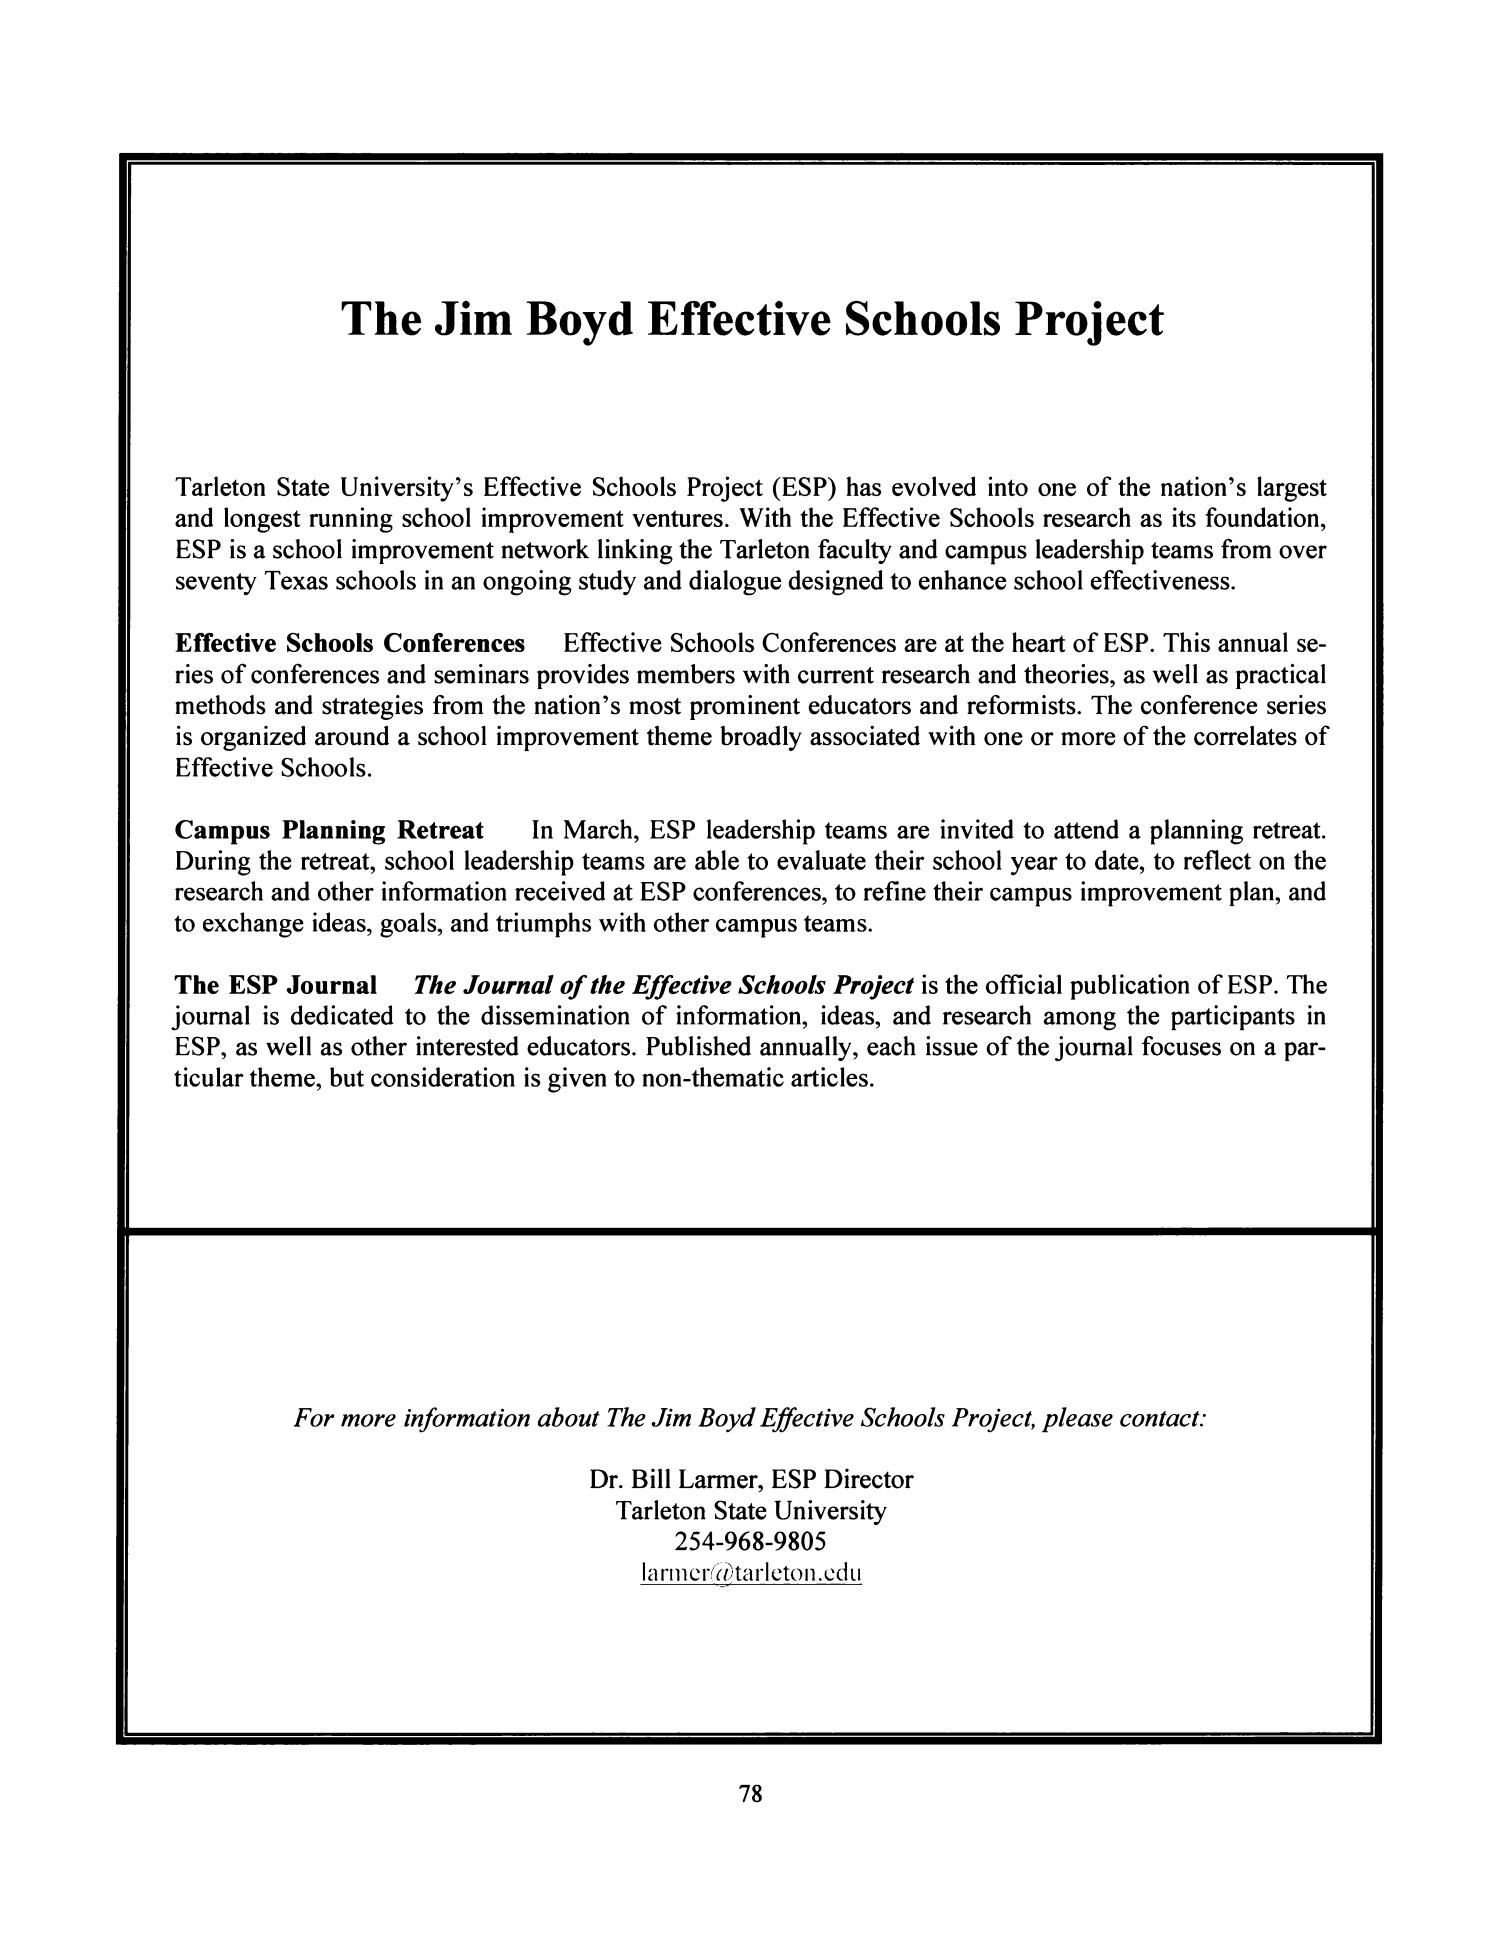 Journal of the Effective Schools Project, Volume 18, 2011                                                                                                      78